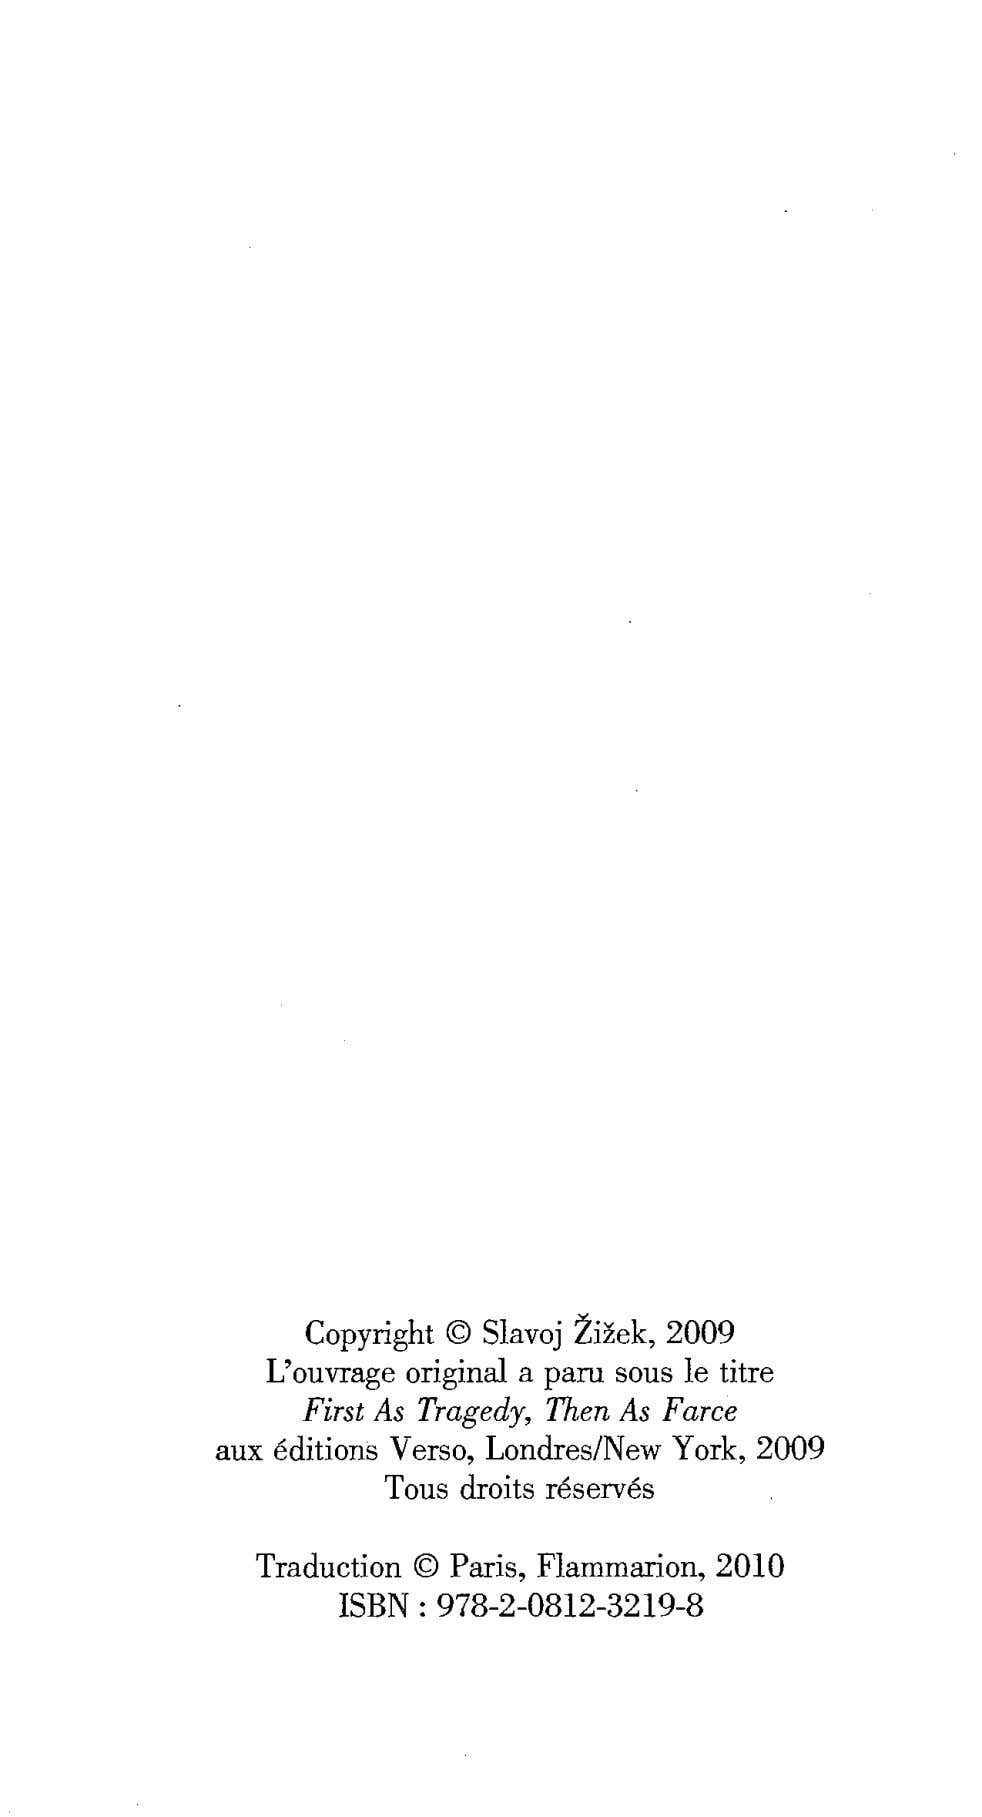 Copyright © Slavoj Zizek, 2009 L'ouvrage original a paru sous le titre First As Tragedy,